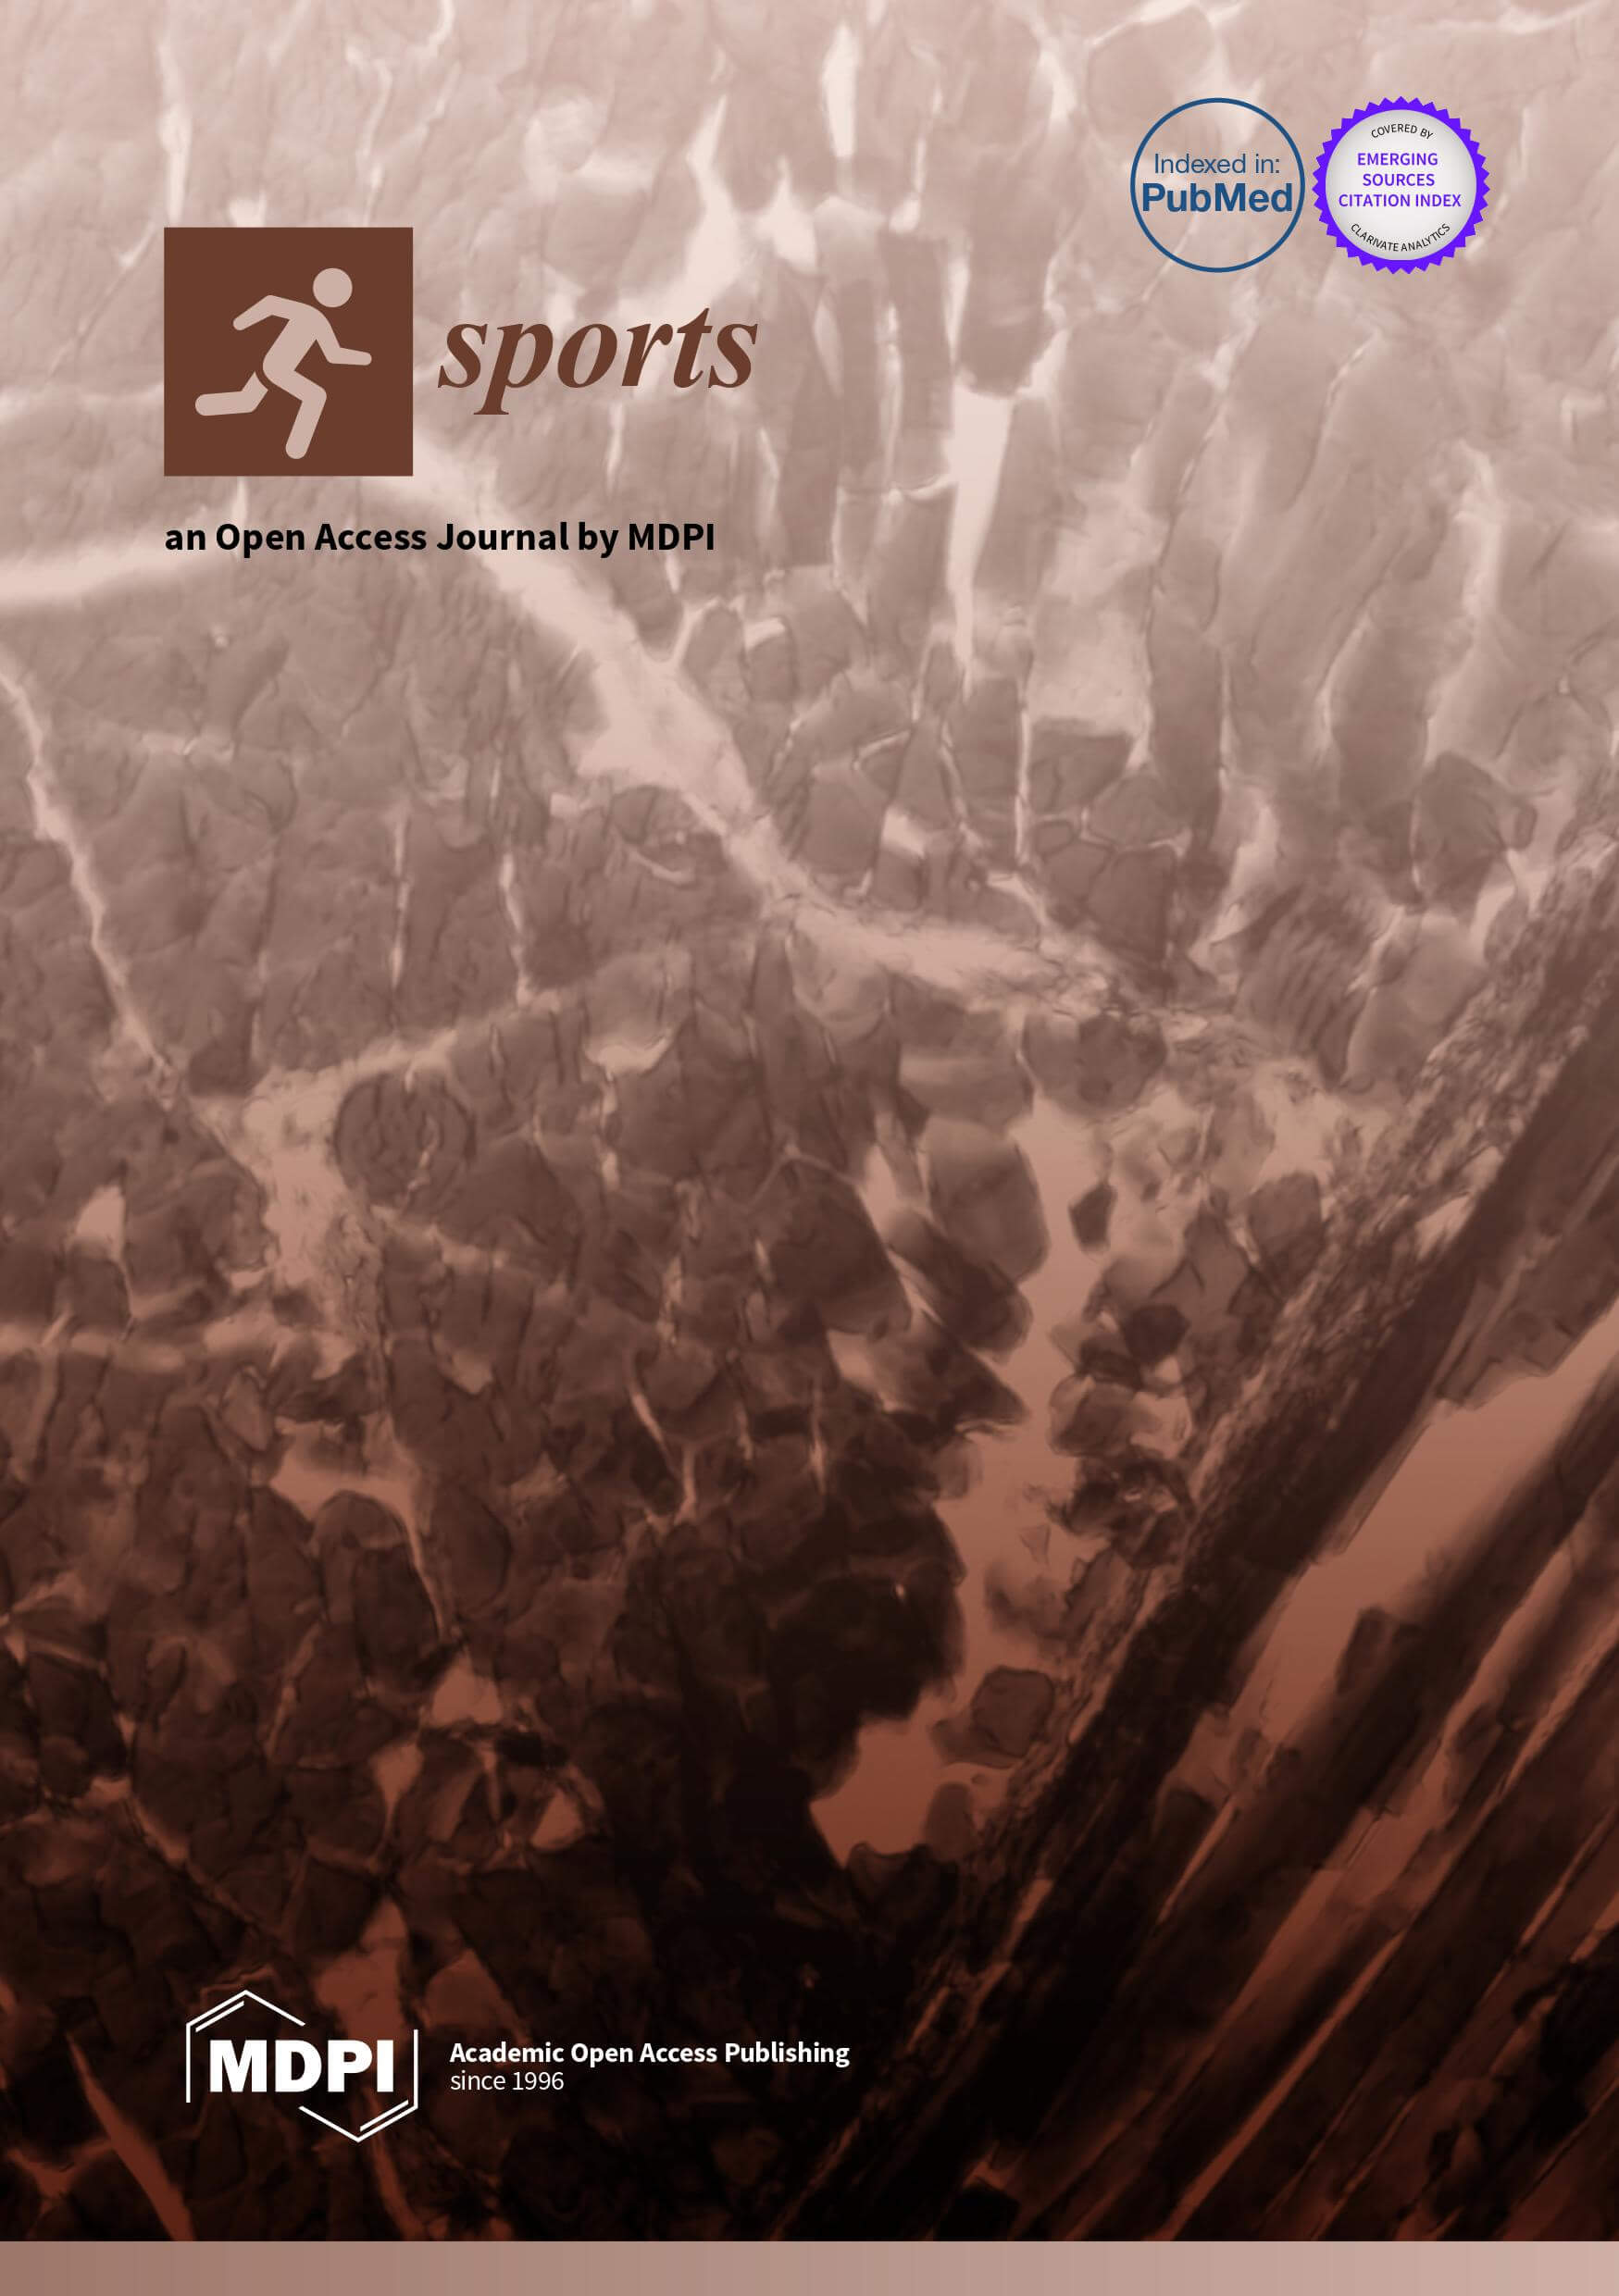 MDPI Sports Journal Cover